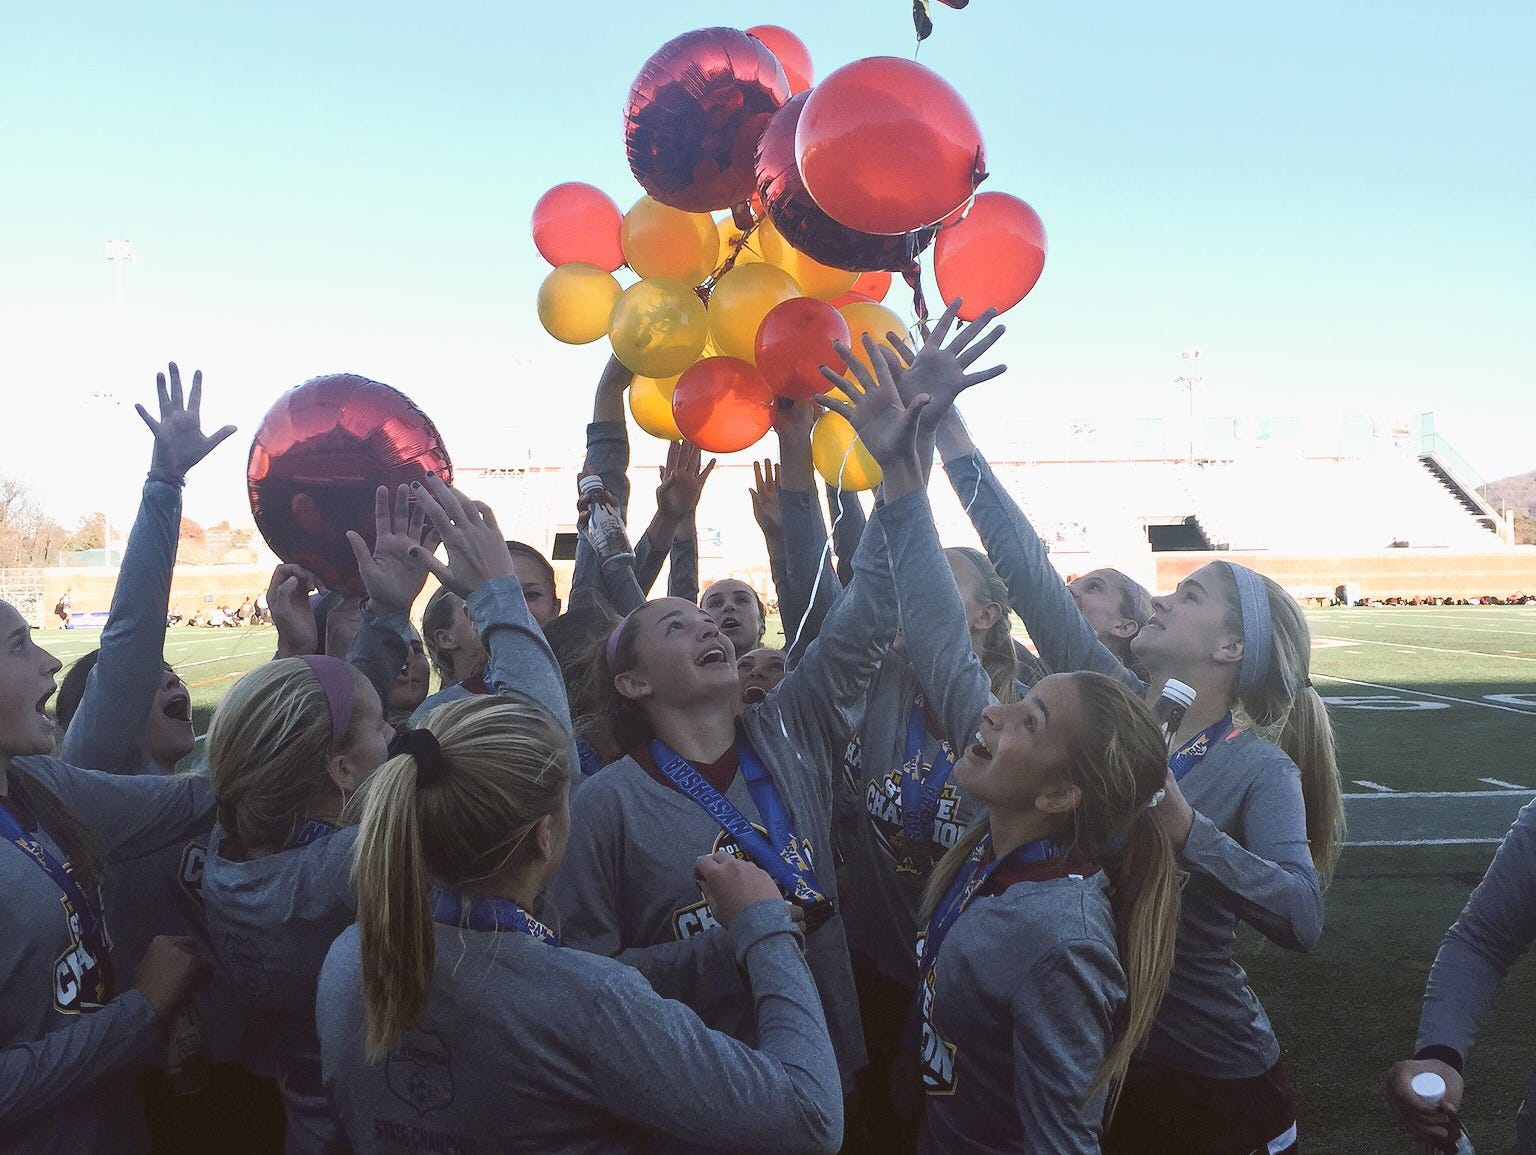 In celebration of its state title, Arlington released colorful balloons over the field.